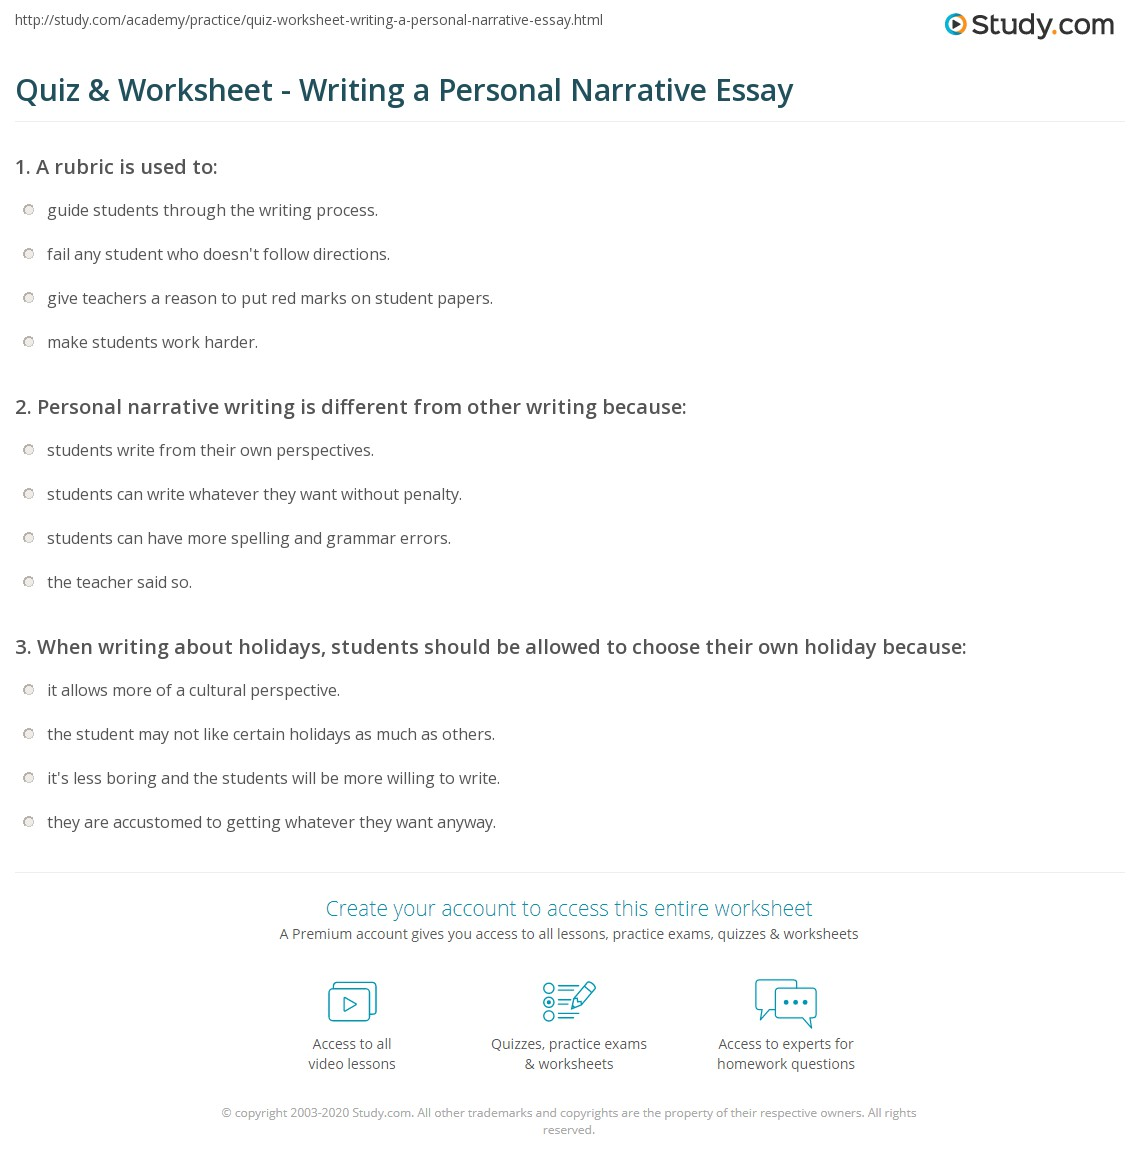 writing essay about literature a guide and style sheet Visual guide to essay writing shows you excellently how to commu- literature at flinders and academic style.